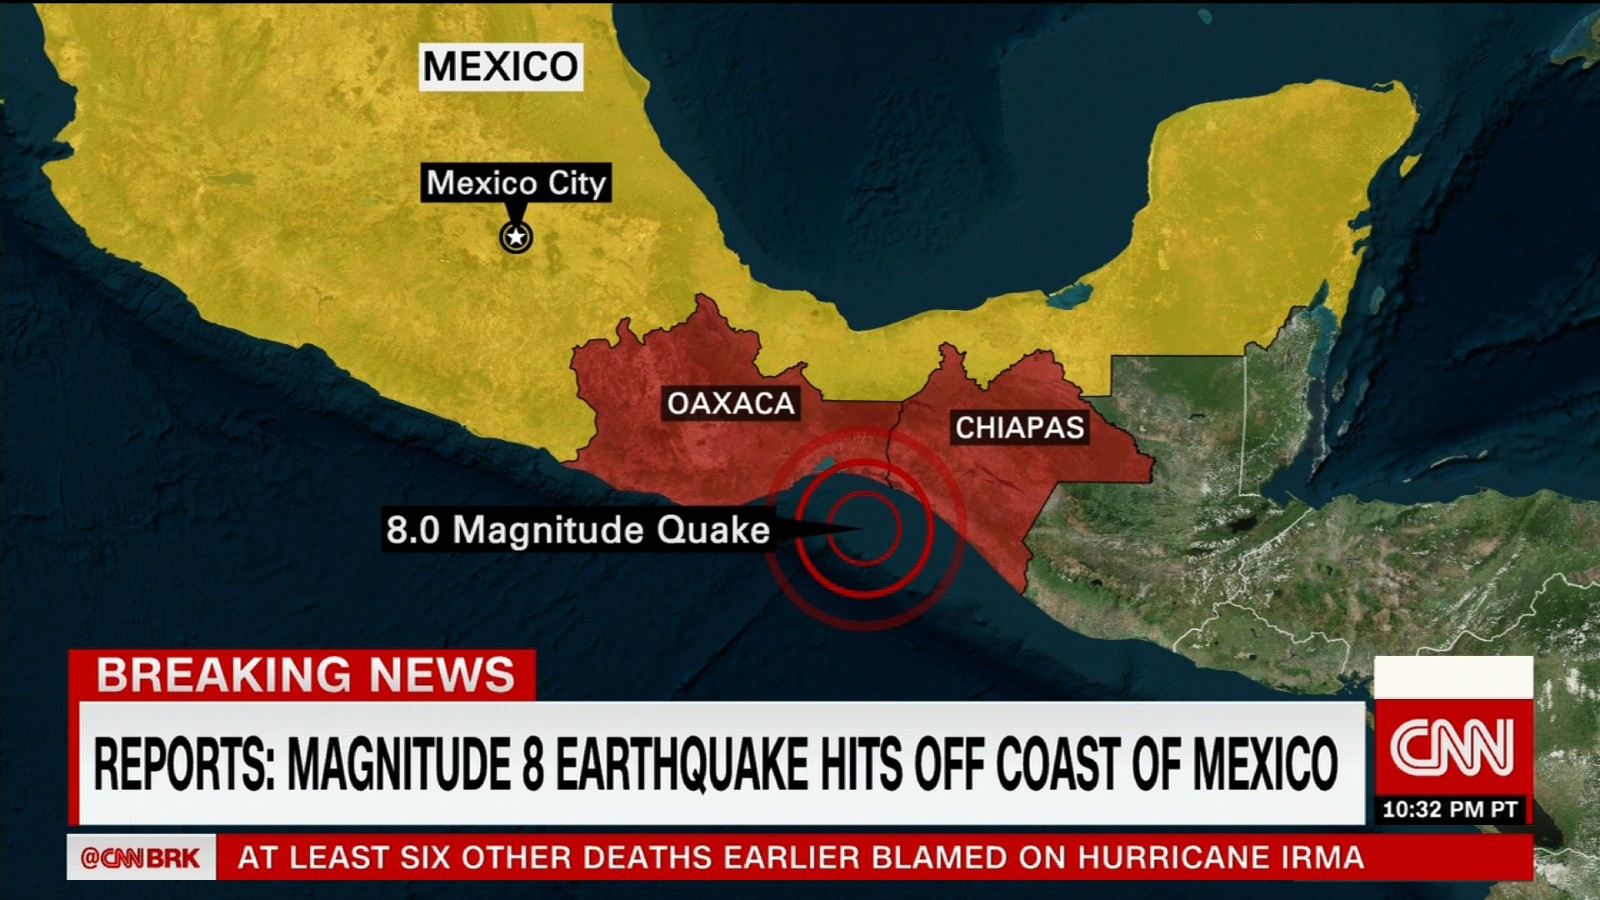 Mexico_Earthquake_September_2017.jpg